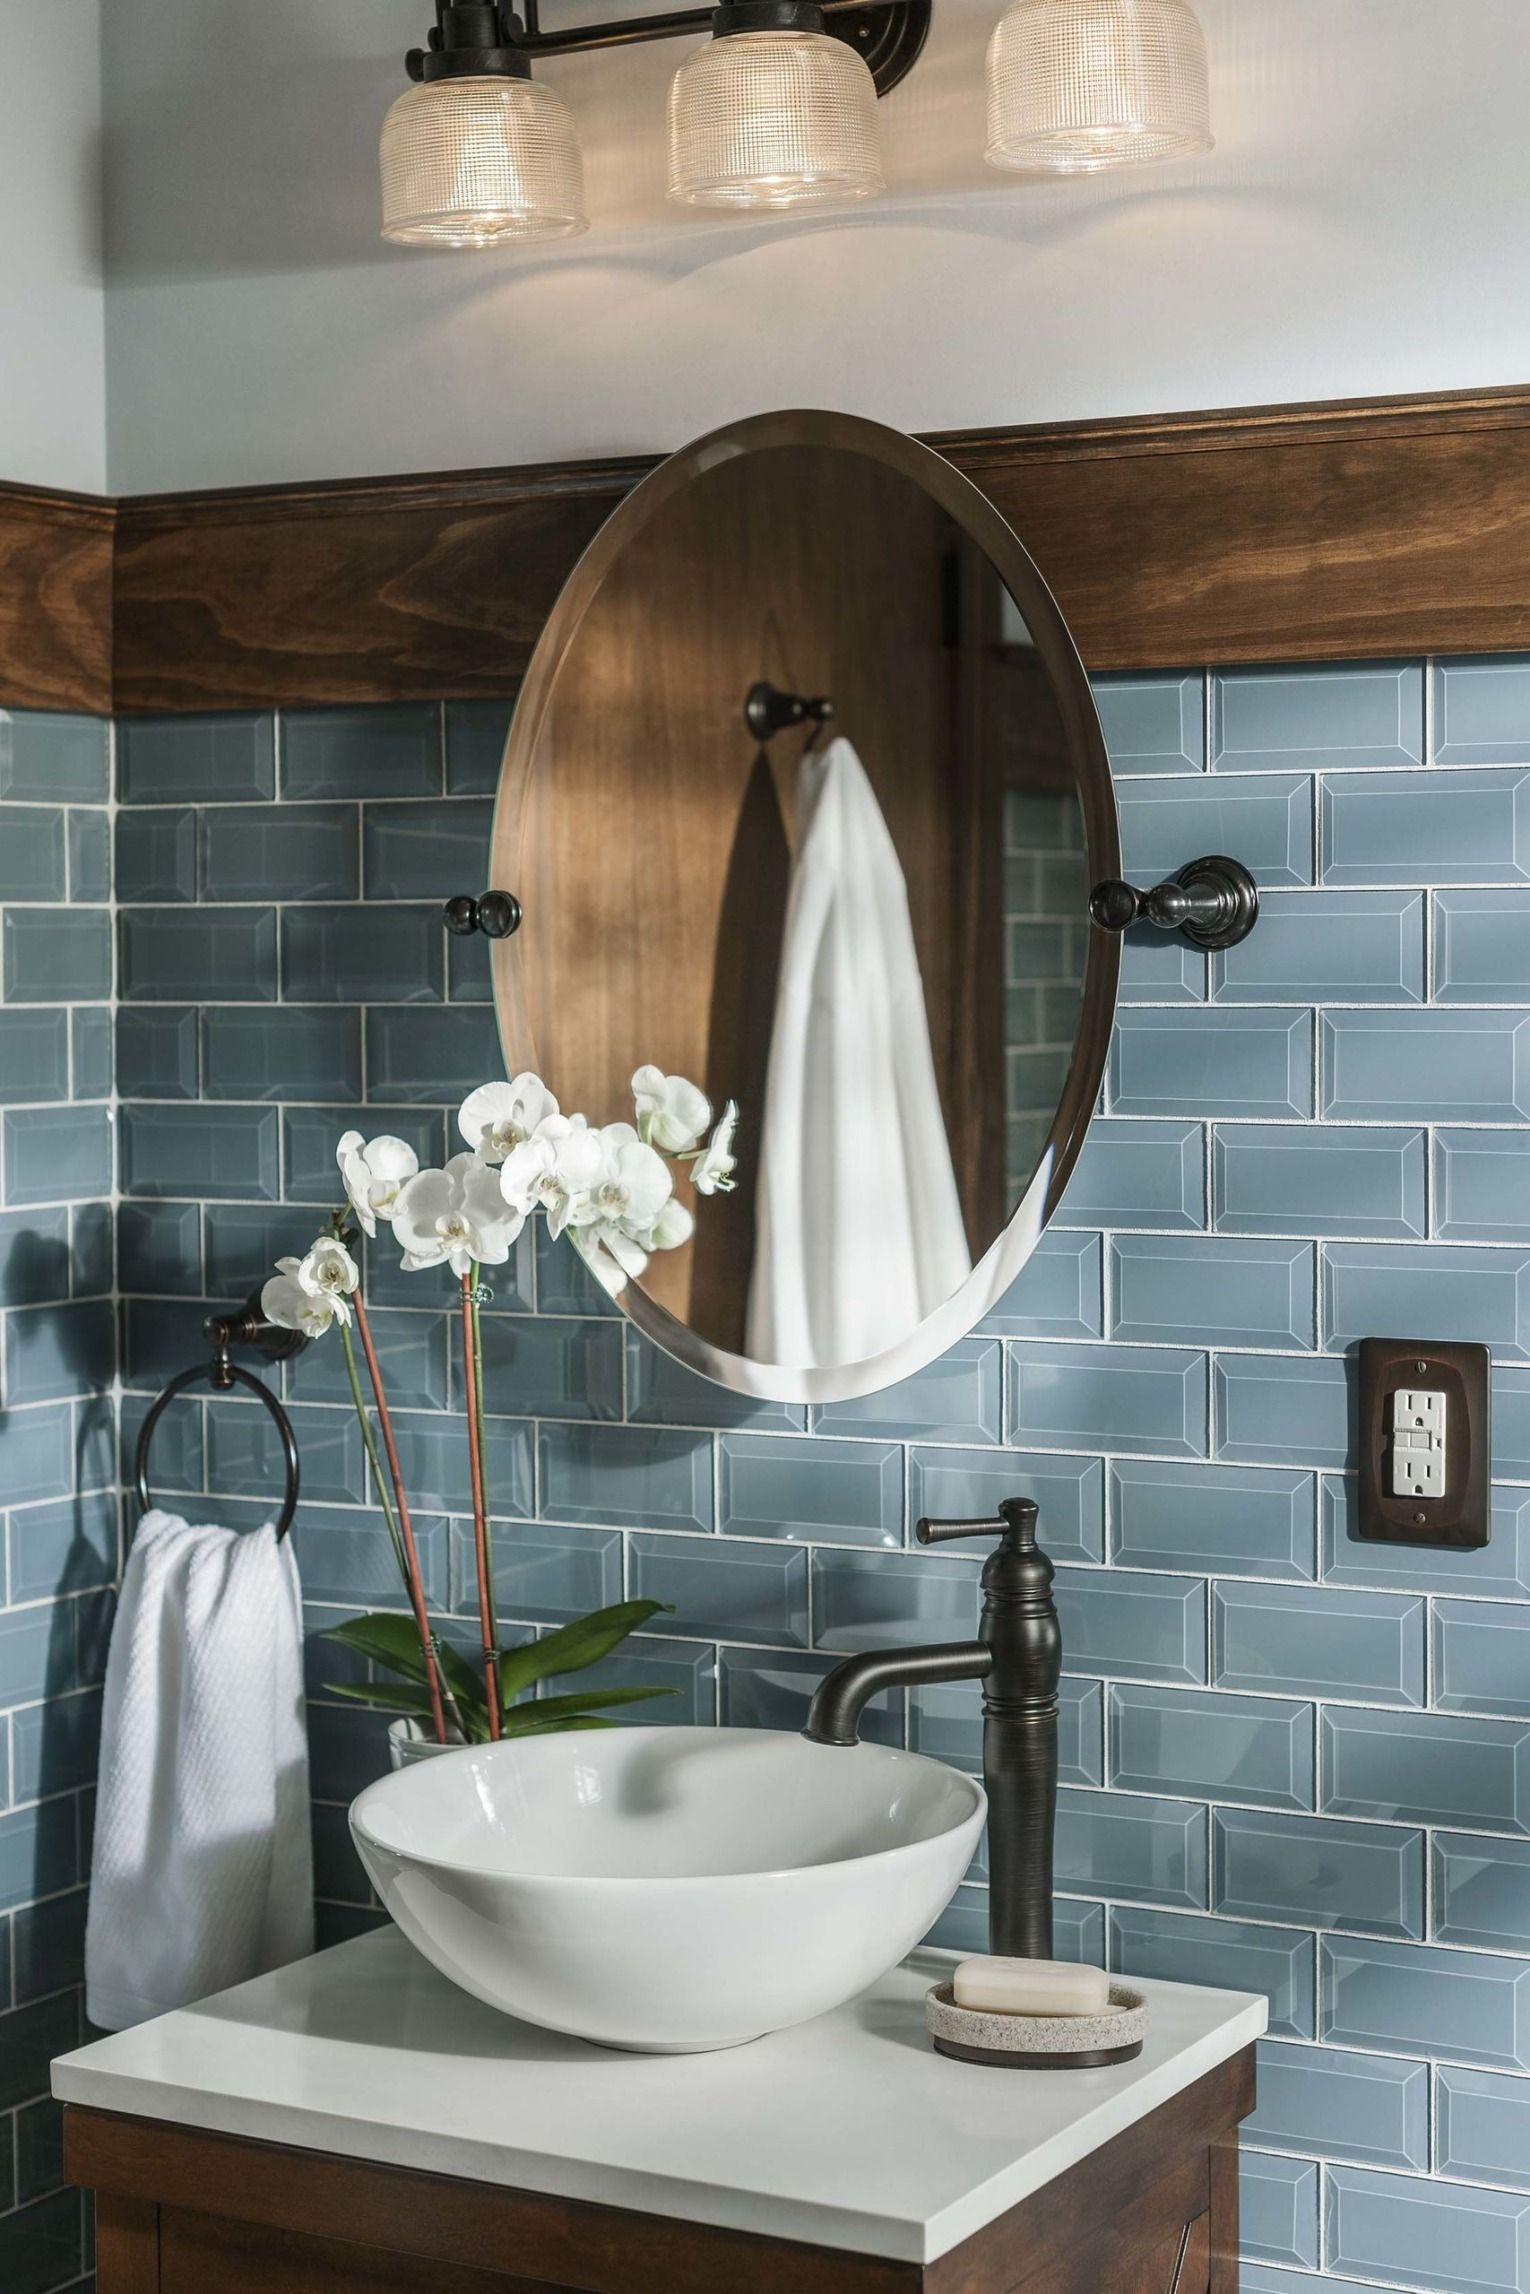 The right light fixture makes the vanity and bathroom shine in more